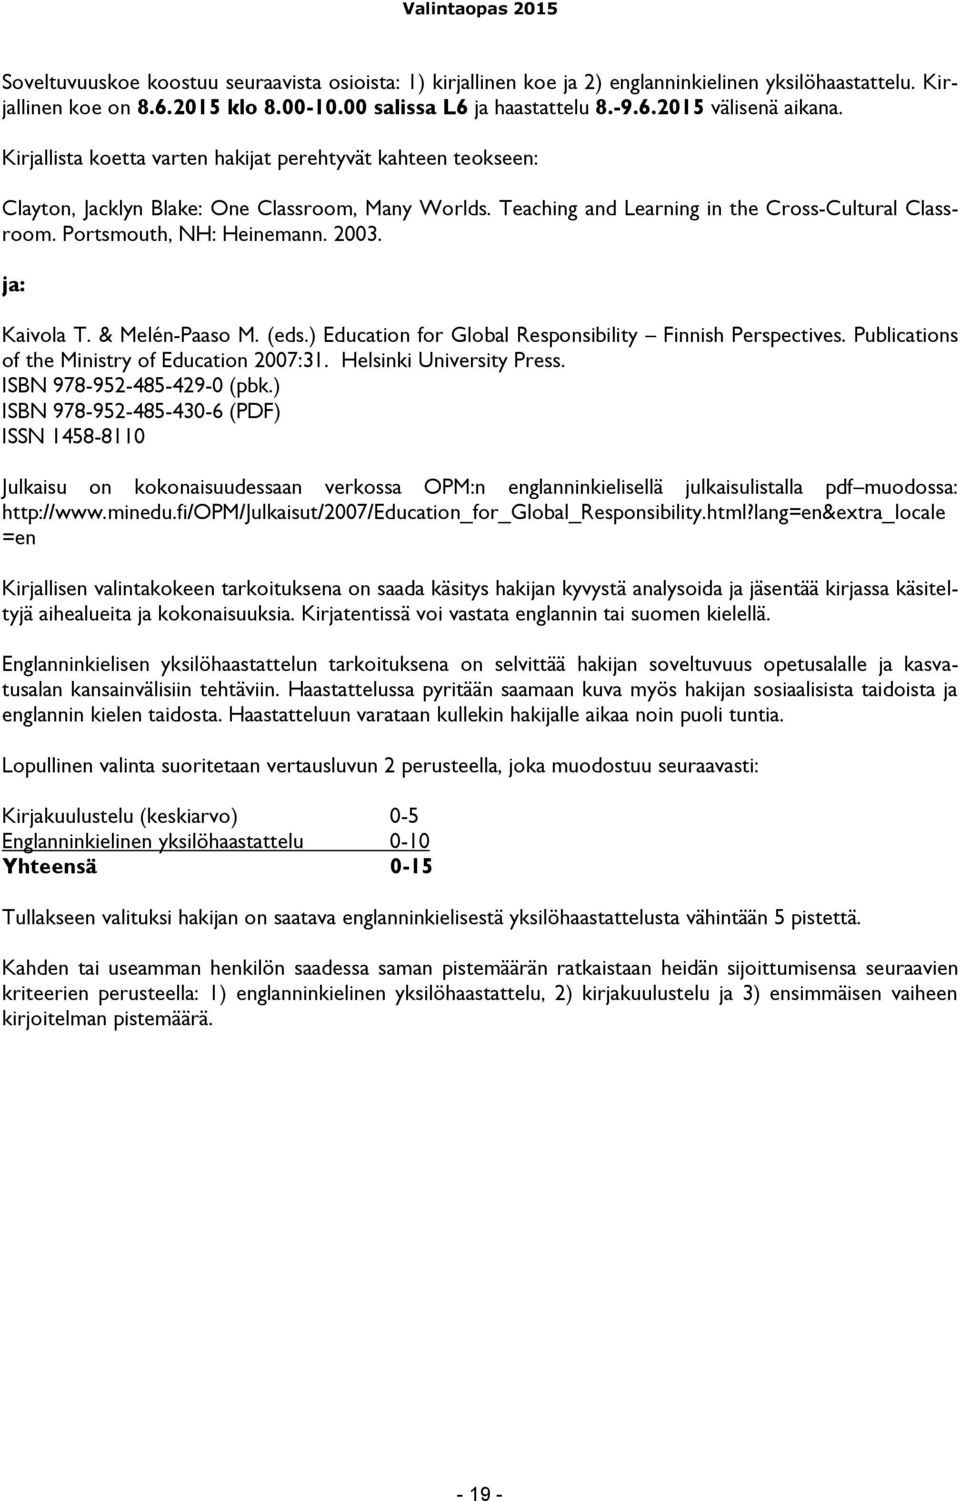 2003. ja: Kaivola T. & Melén-Paaso M. (eds.) Education for Global Responsibility Finnish Perspectives. Publications of the Ministry of Education 2007:31. Helsinki University Press.